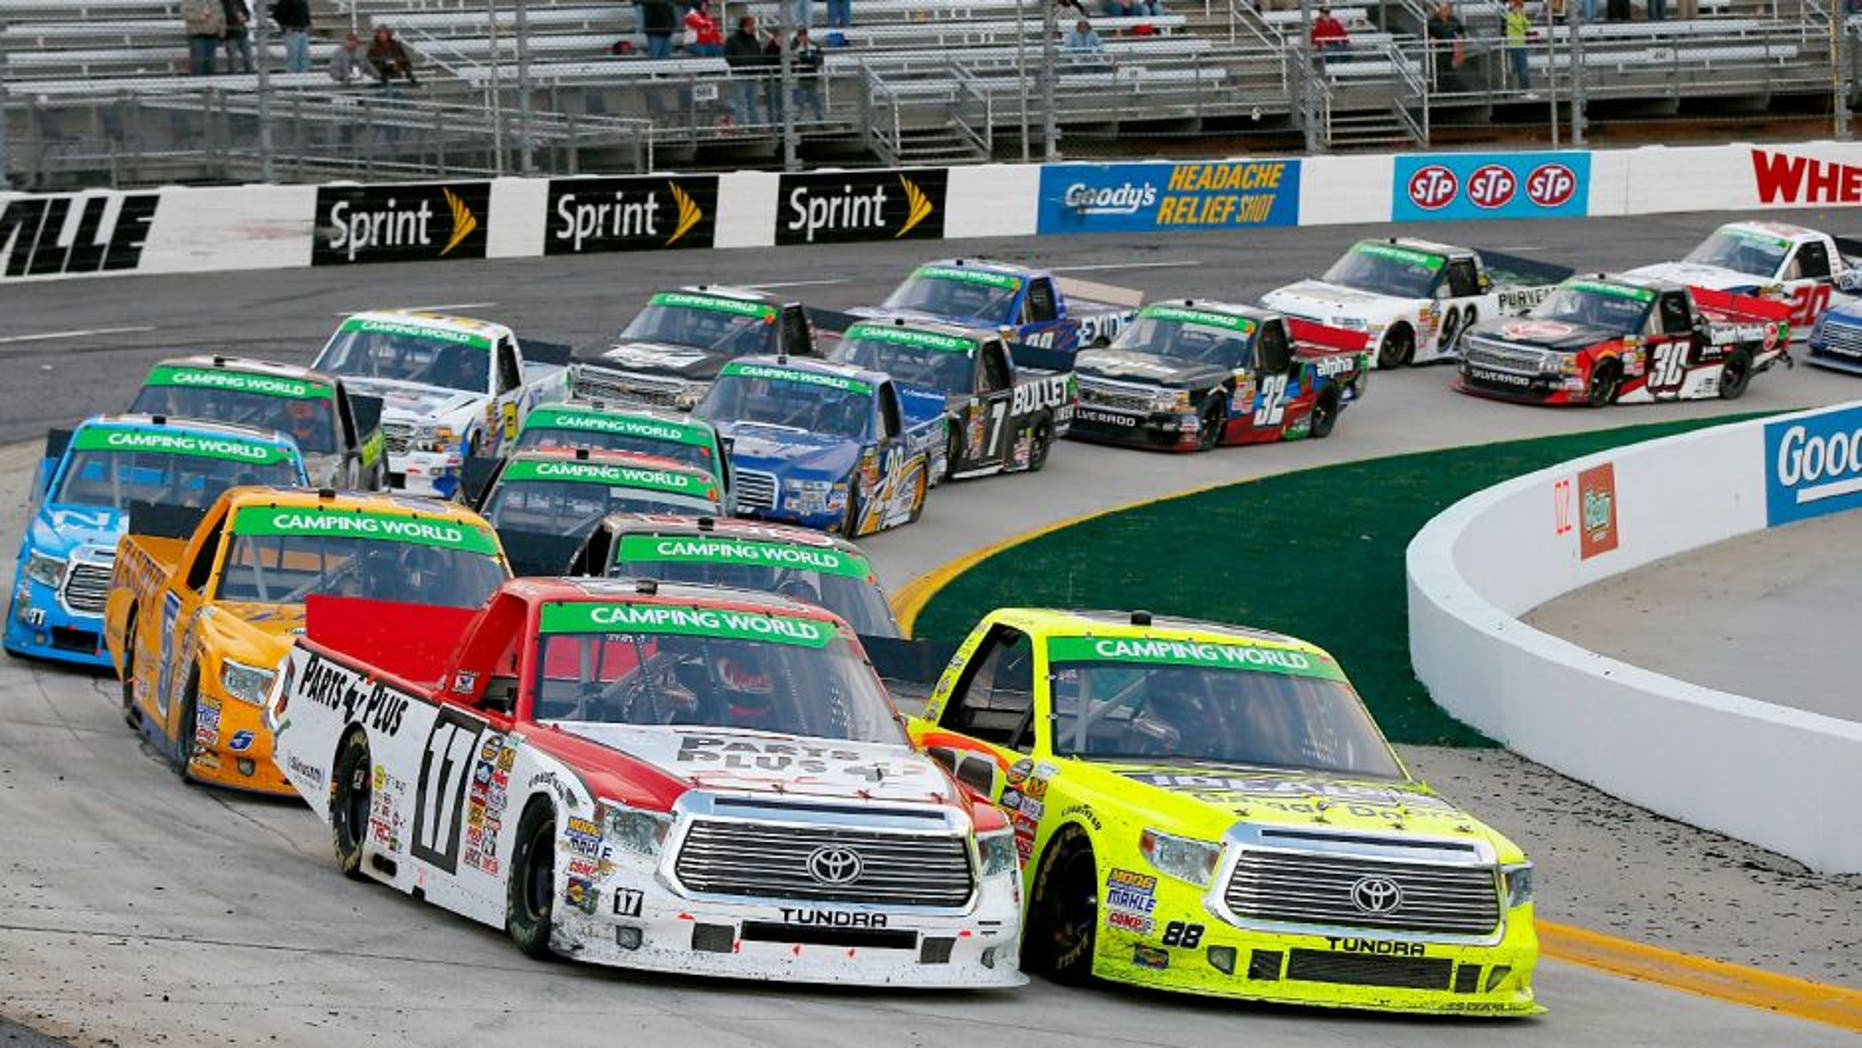 MARTINSVILLE, VA - MARCH 30: Timothy Peters, driver of the #17 Parts Plus Toyota, and Matt Crafton, driver of the #88 Ideal Doors / Menards Toyota, lead the field to a restart during the NASCAR Camping World Truck Series Kroger 250 at Martinsville Speedway on March 30, 2014 in Martinsville, Virginia. (Photo by Matt Sullivan/Getty Images)